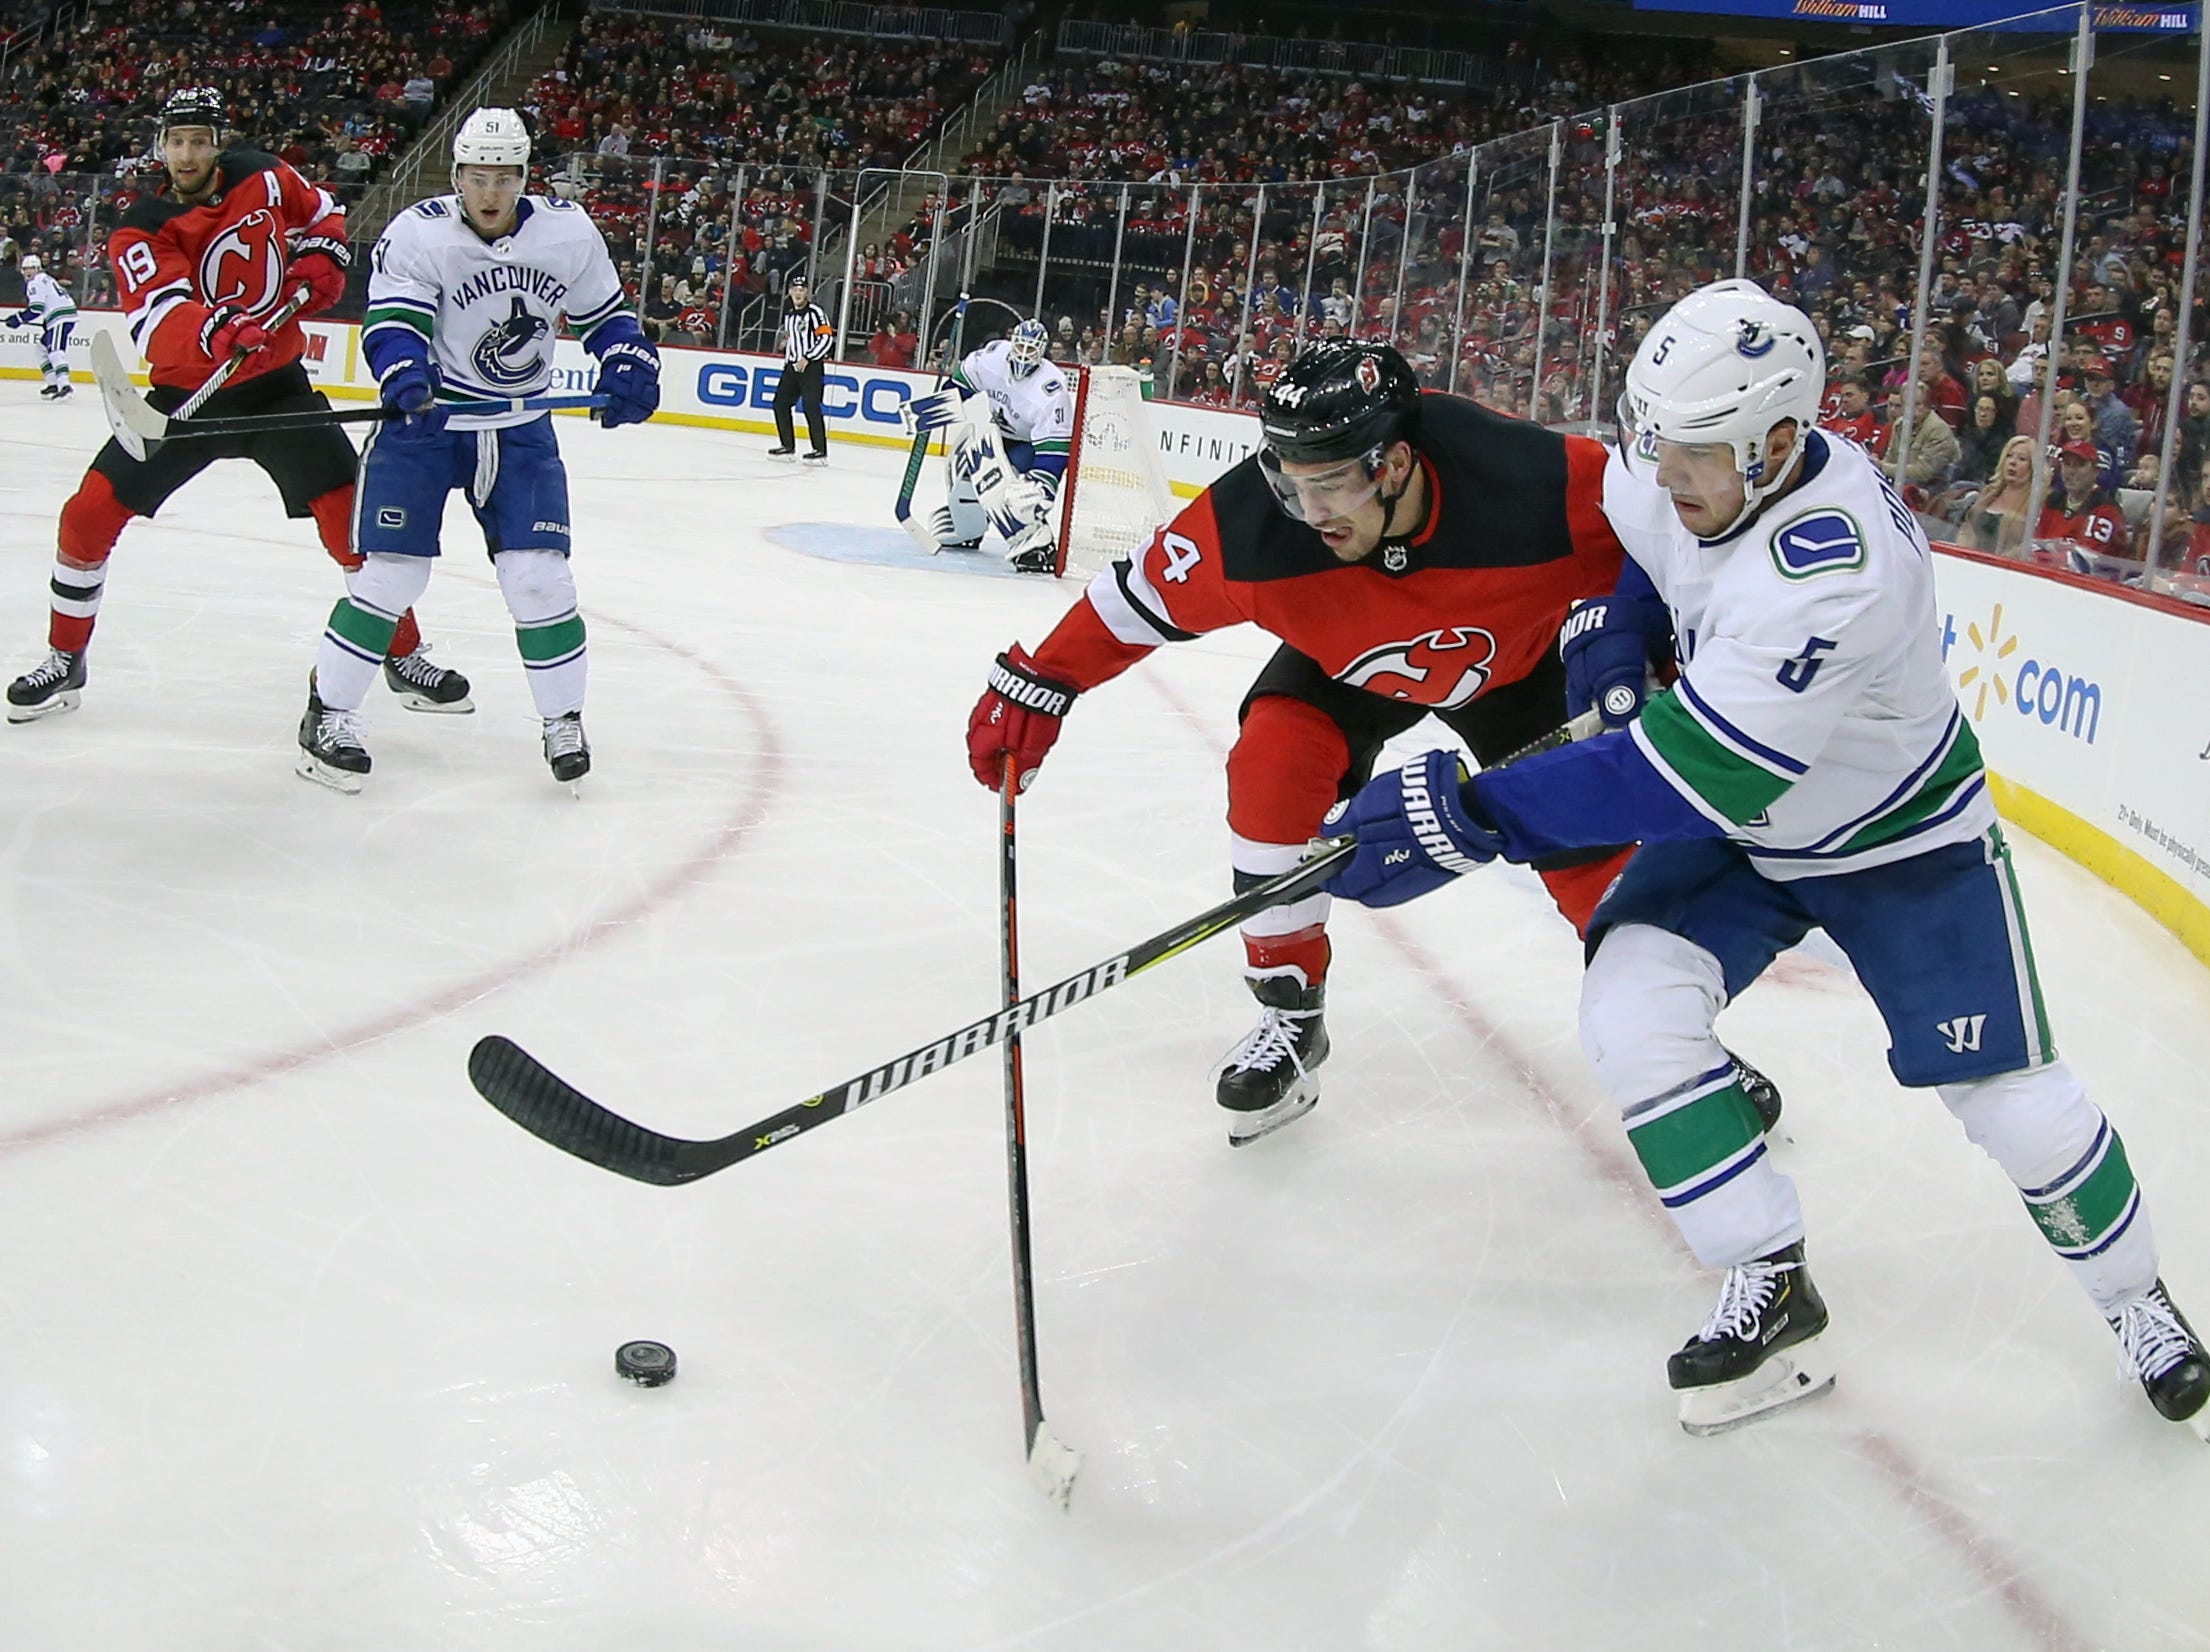 Dec 31, 2018; Newark, NJ, USA; New Jersey Devils left wing Miles Wood (44) battles for the puck against Vancouver Canucks defenseman Derrick Pouliot (5) during the second period at Prudential Center.